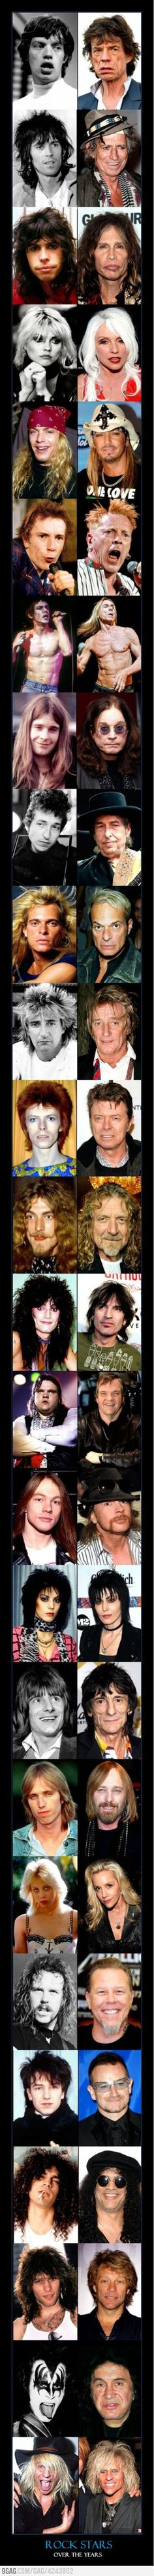 aging timeline — 26 rock stars, then and now Musical Aging Timeline — 26 rock stars, then and now. (Click pic for full size viewing).Musical Aging Timeline — 26 rock stars, then and now. (Click pic for full size viewing). Music Love, Music Is Life, Rock Music, My Music, Beatles, Pop Rock, Rock N Roll, Musica Popular, Stars Then And Now